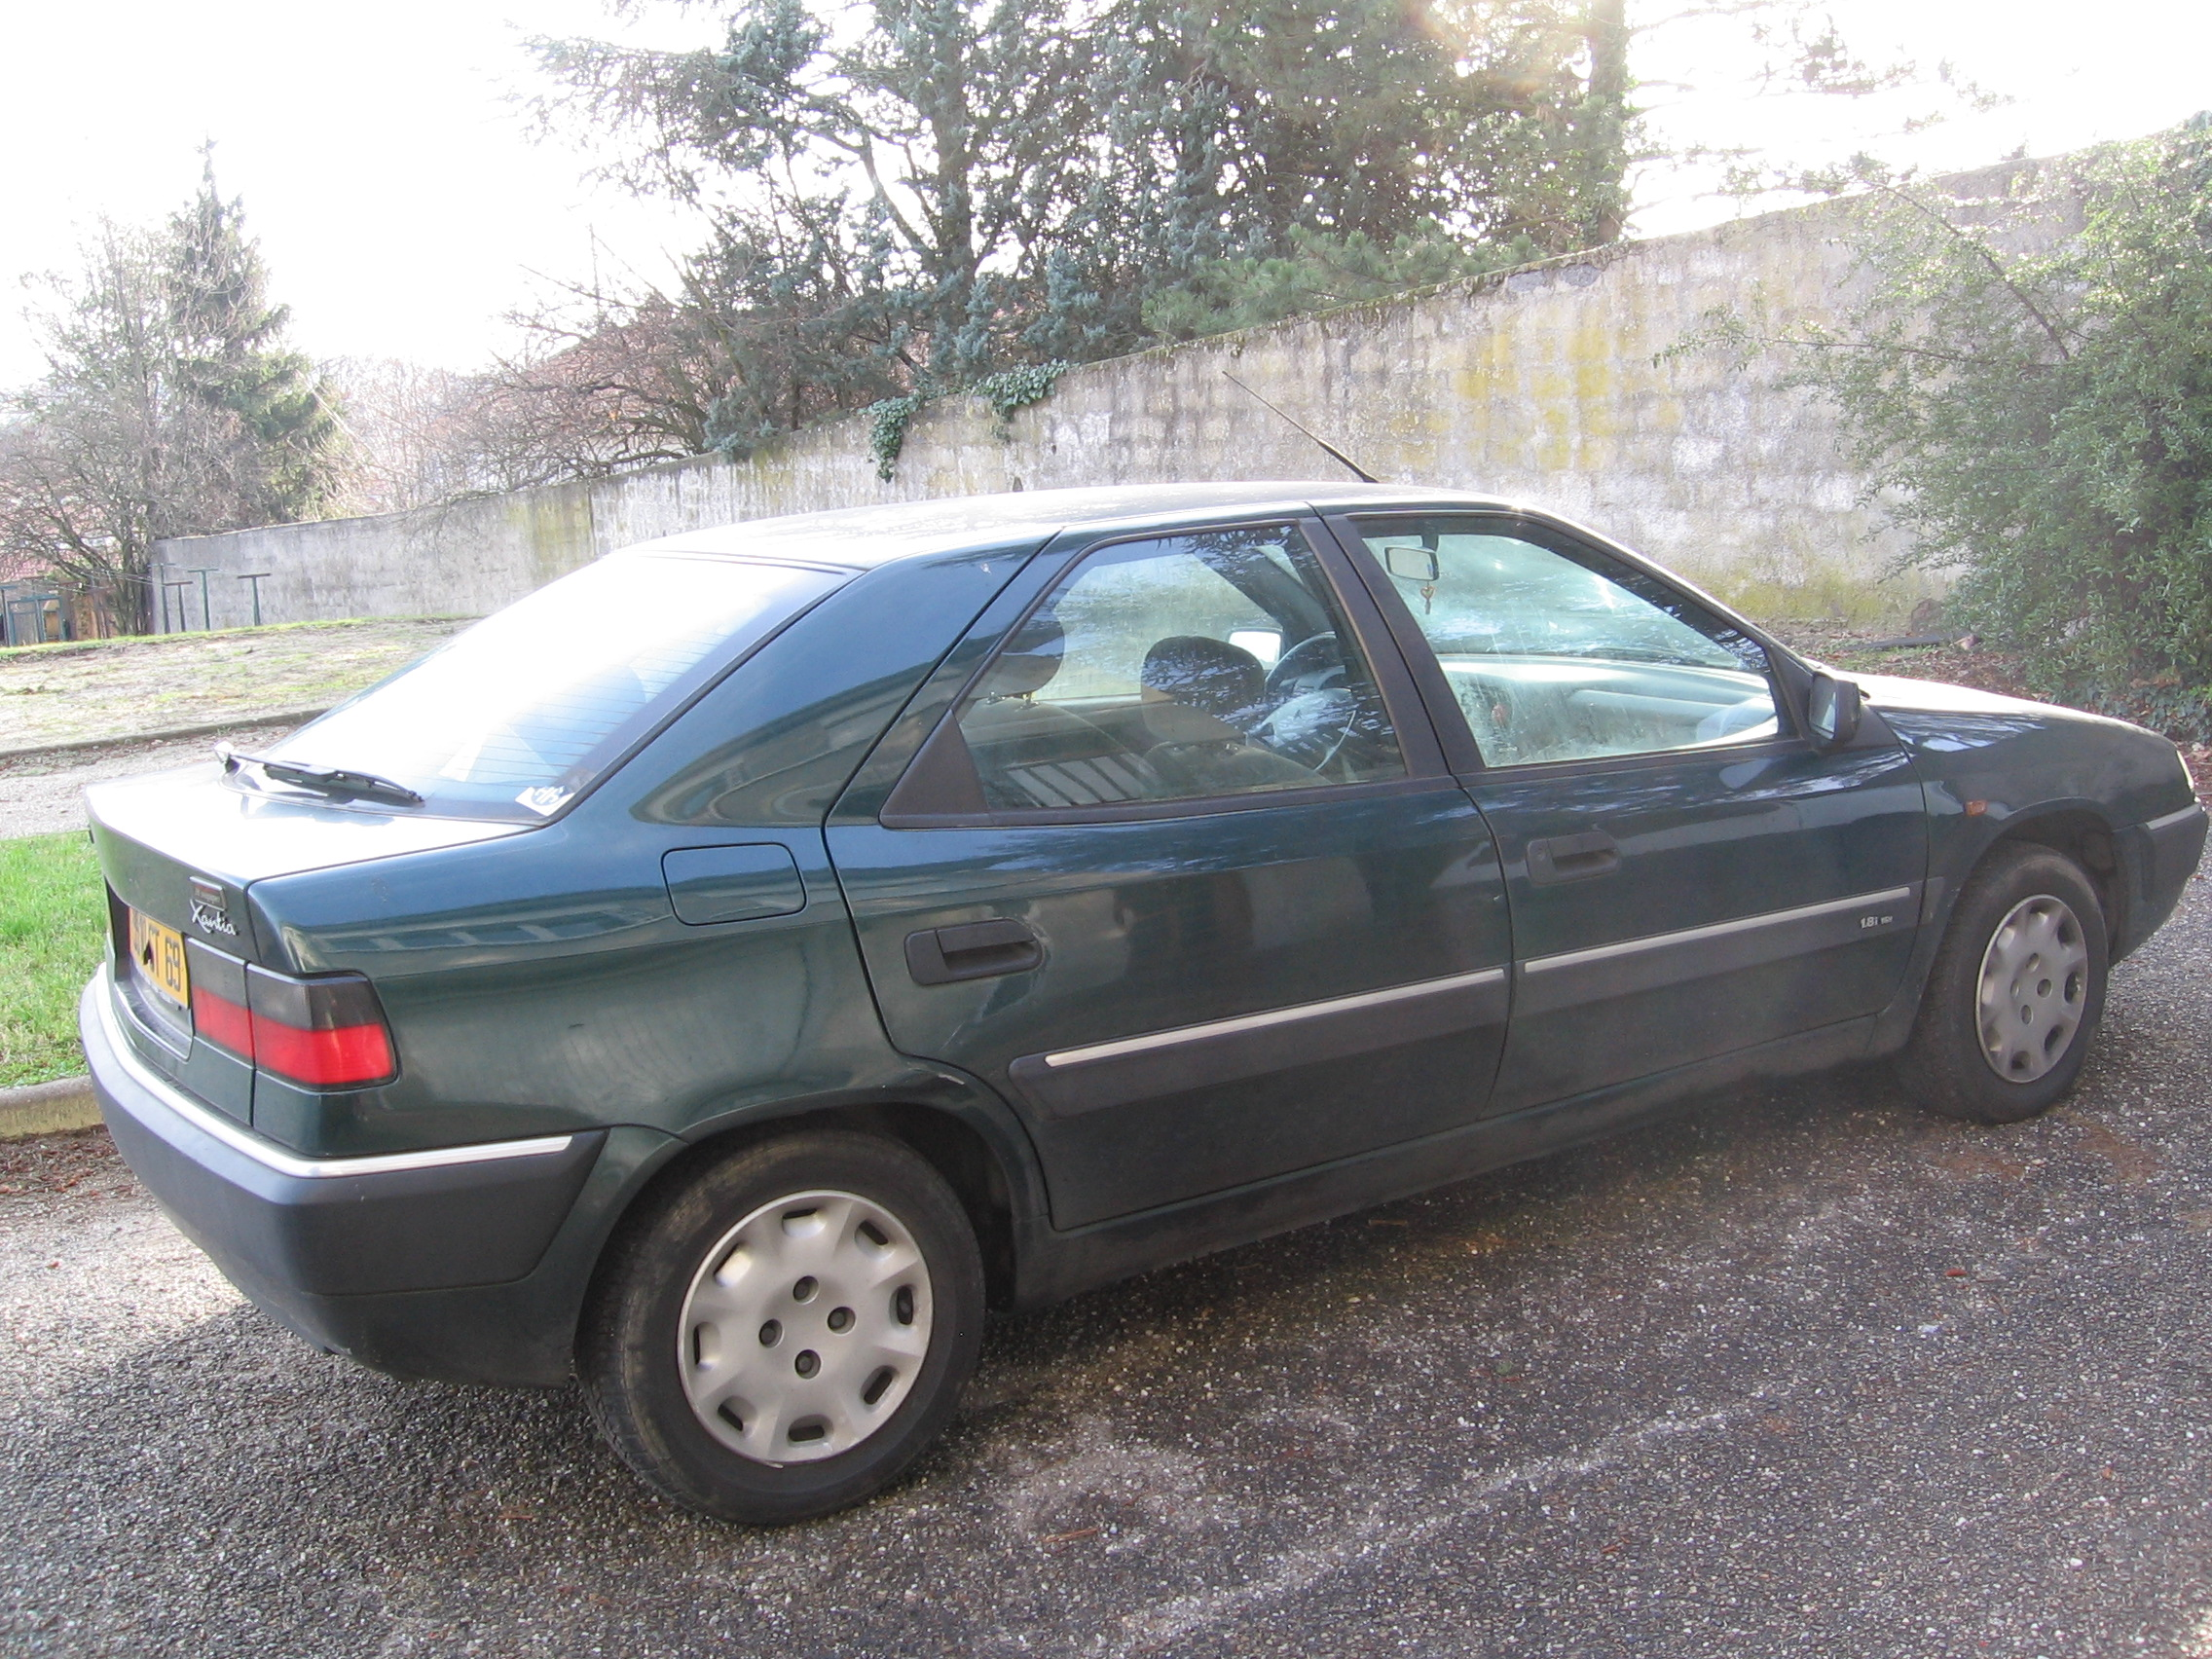 CITROEN XANTIA 1.6 engine